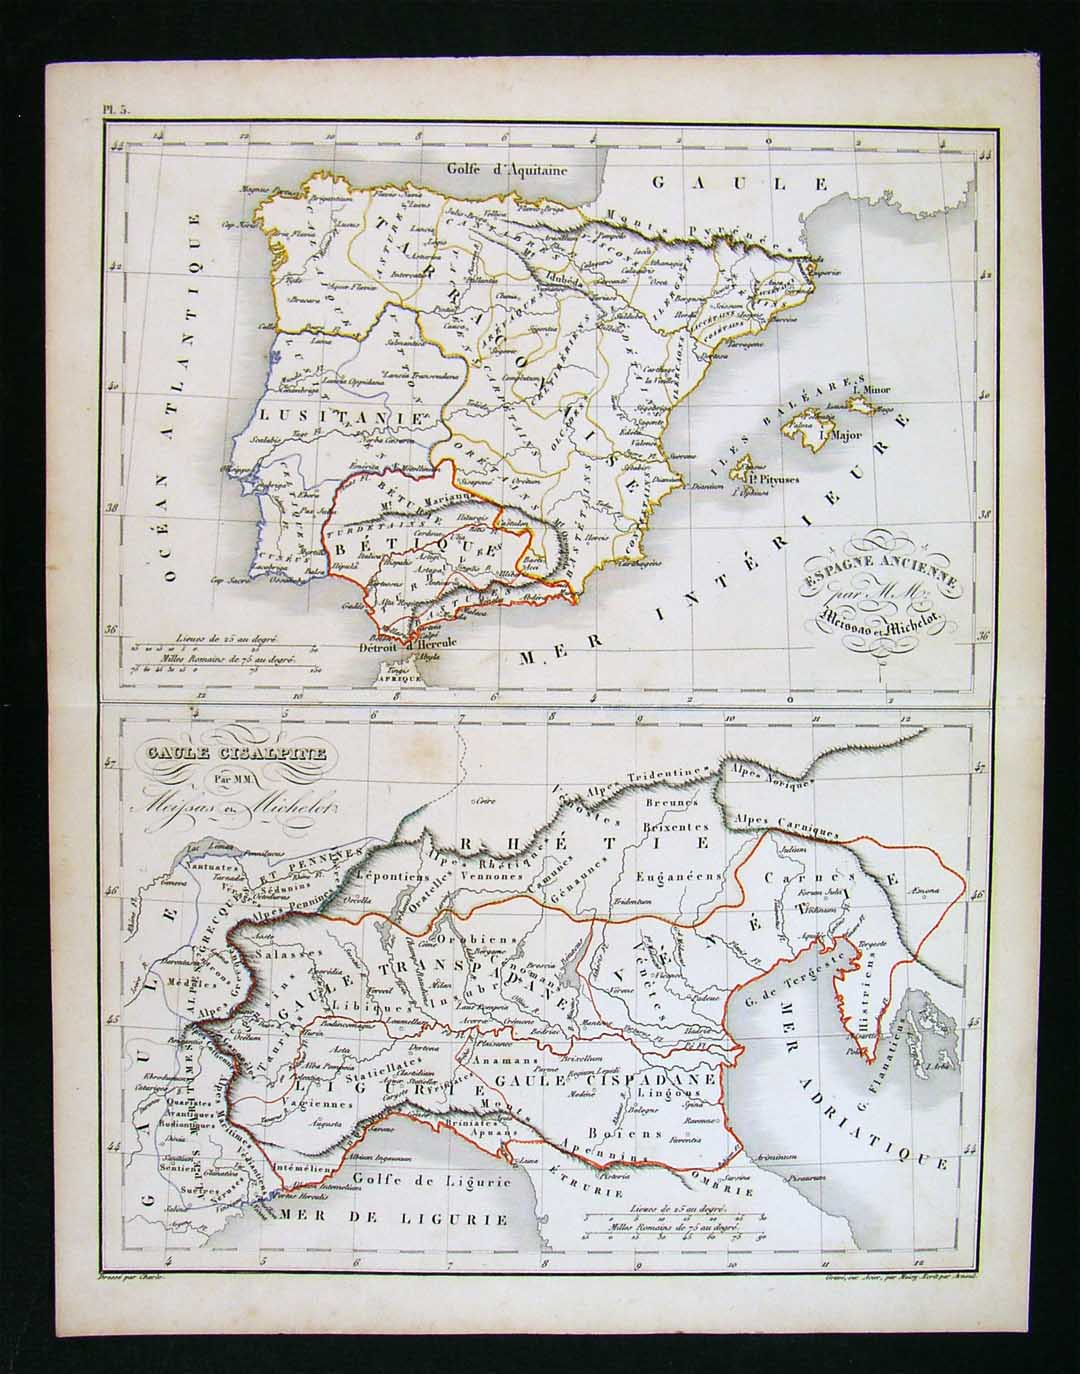 Map Of Spain Portugal And Italy.Details About 1838 Charle Map Ancient Spain Portugal Hispania Lusitania Gaule Cisalpine Italy